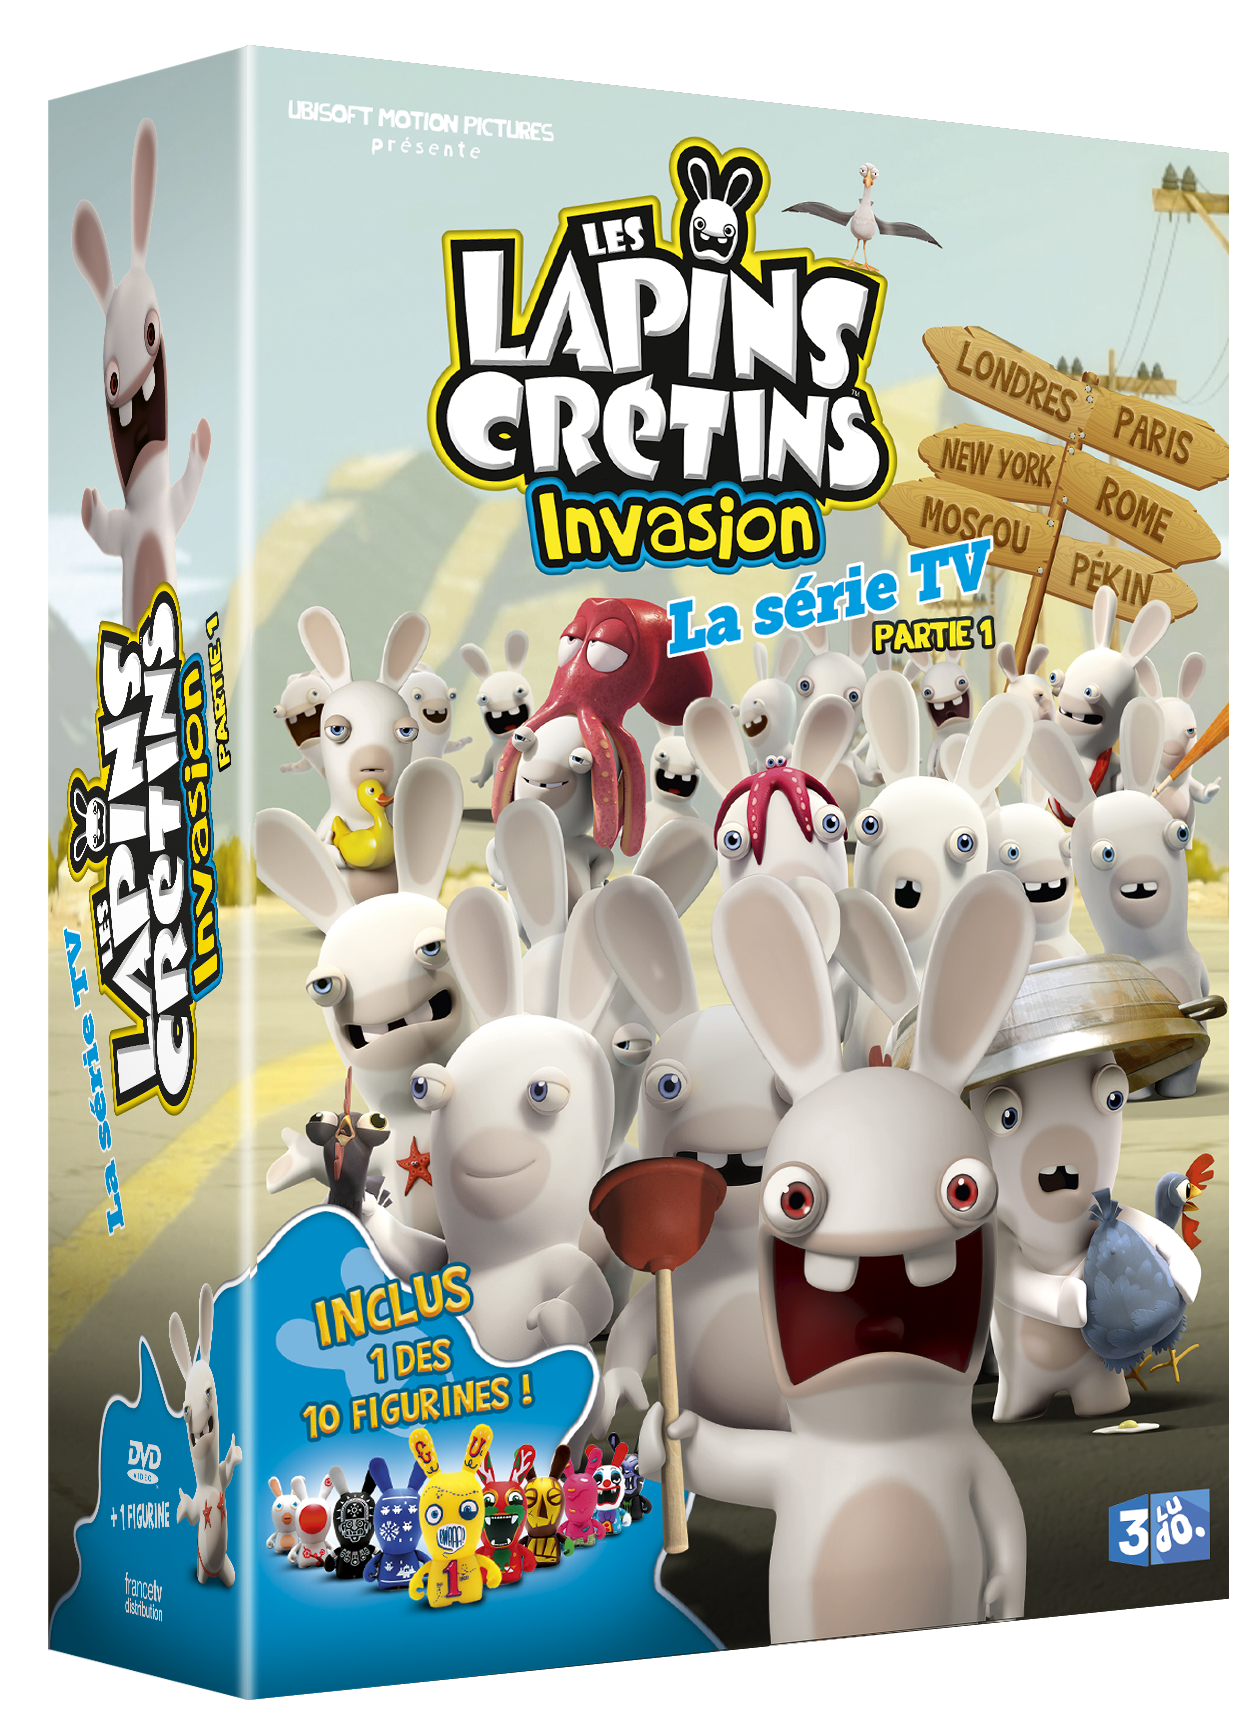 les lapins cr tins invasion test dvd saison 1 insert coin. Black Bedroom Furniture Sets. Home Design Ideas